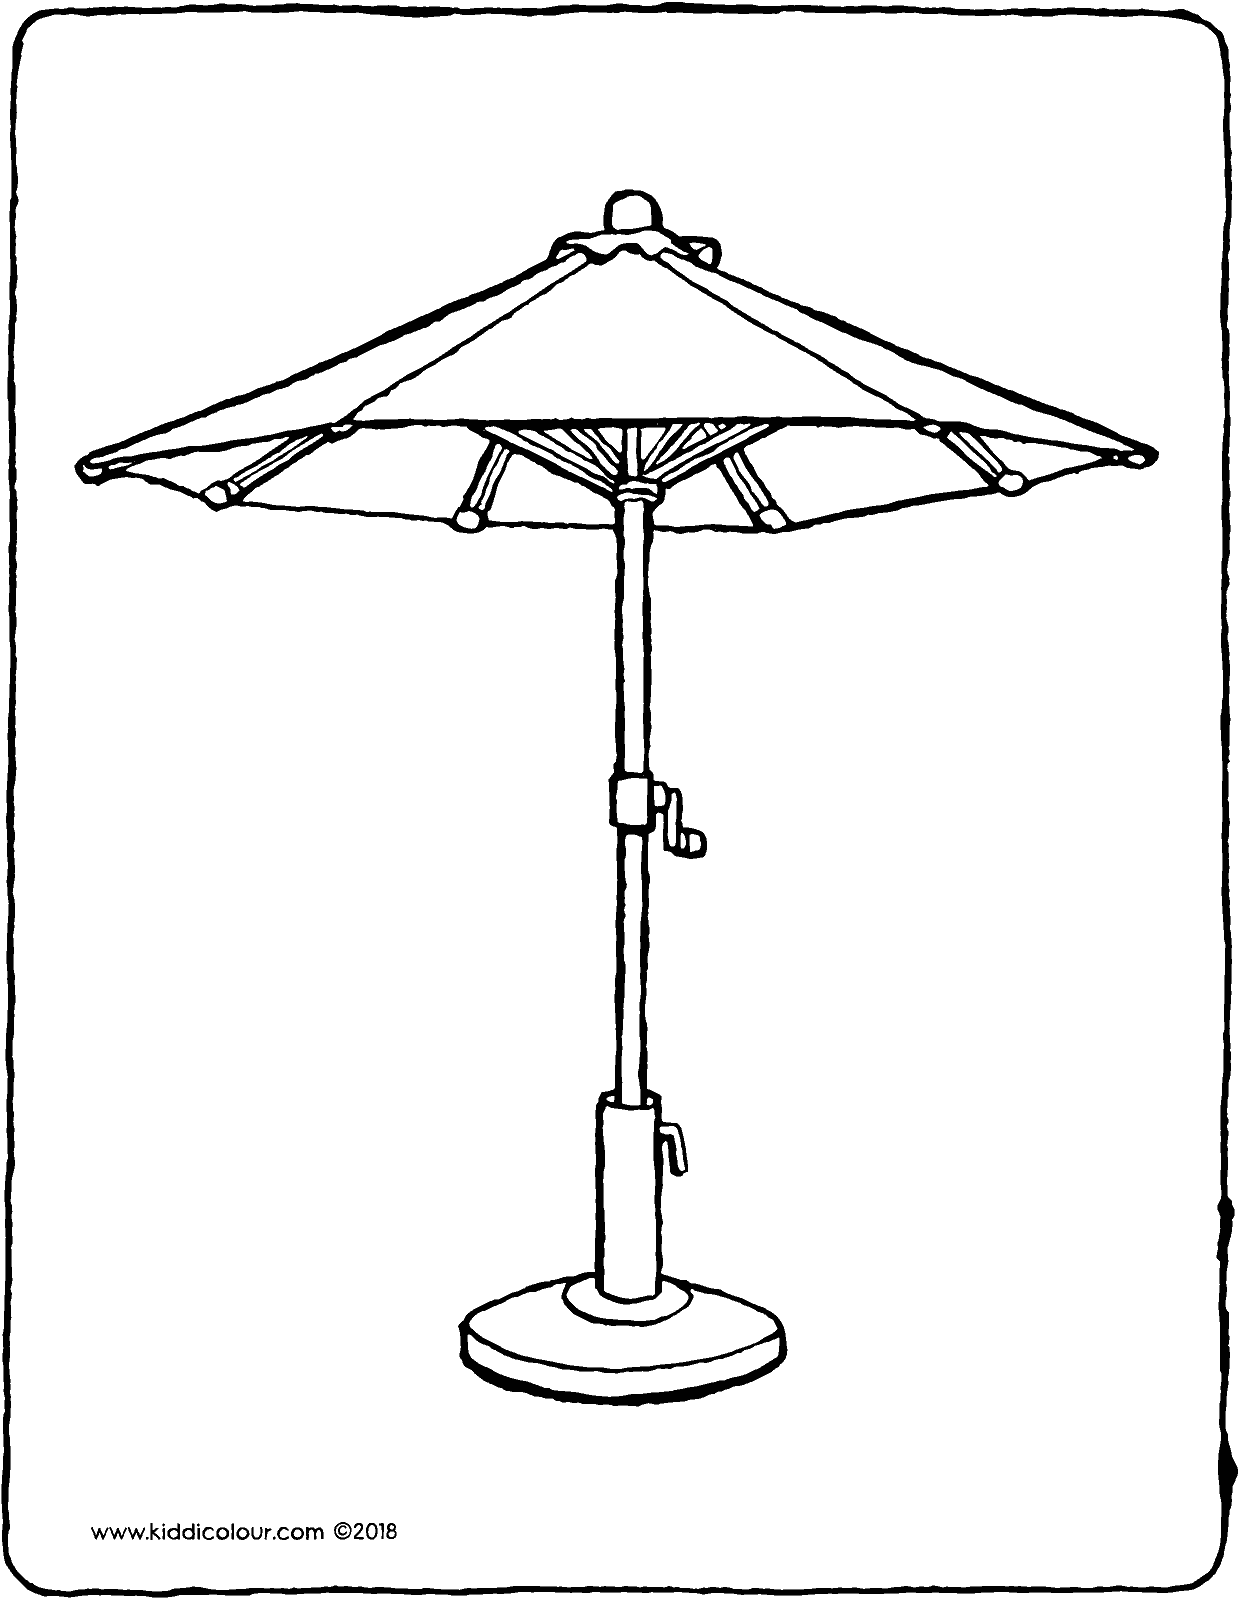 garden parasol colouring page drawing picture 01V